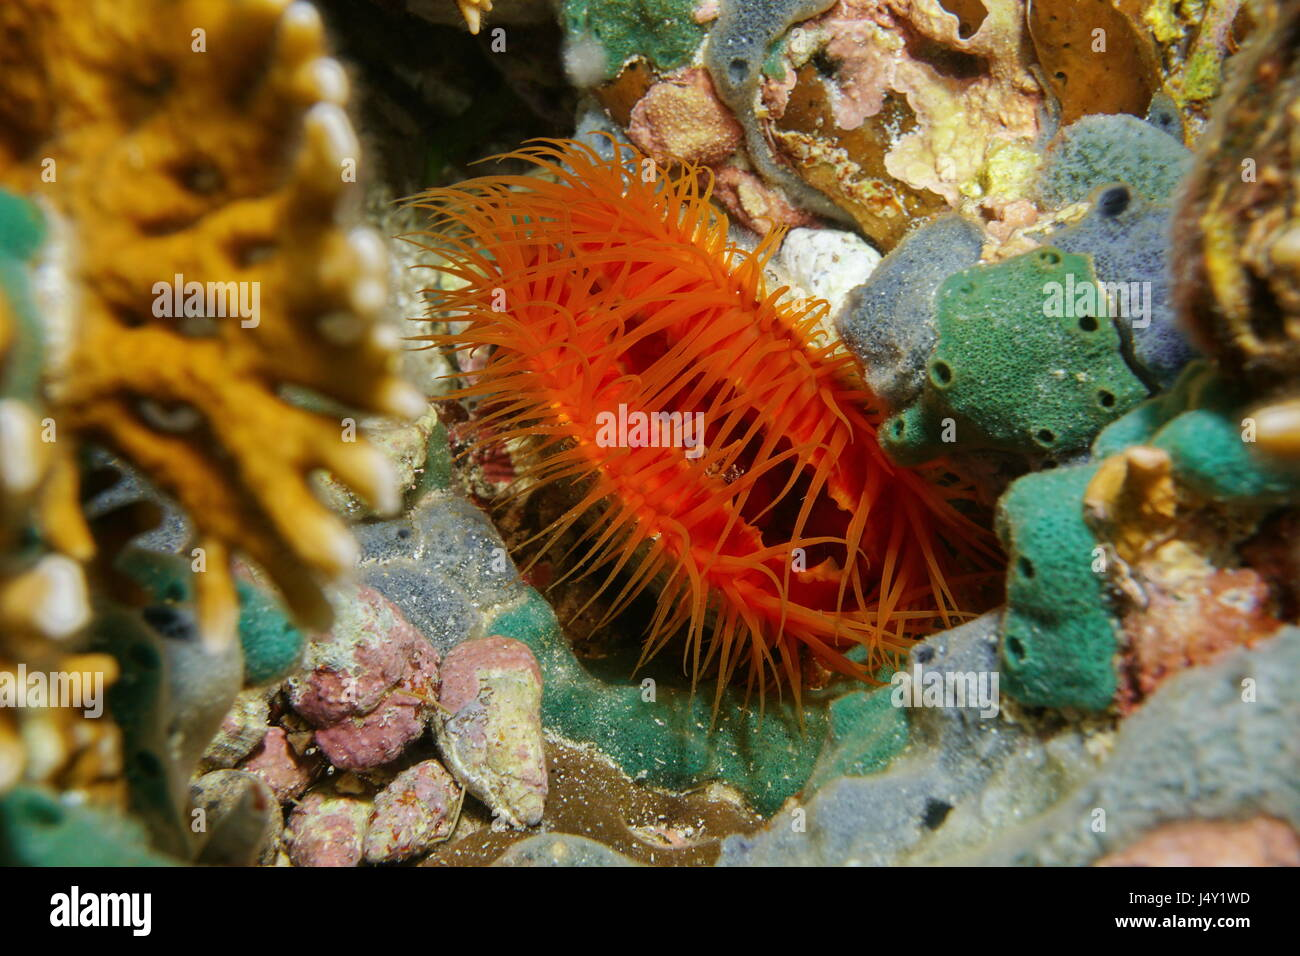 Marine bivalve mollusk Flame scallop, Ctenoides scaber, underwater in the Caribbean sea - Stock Image